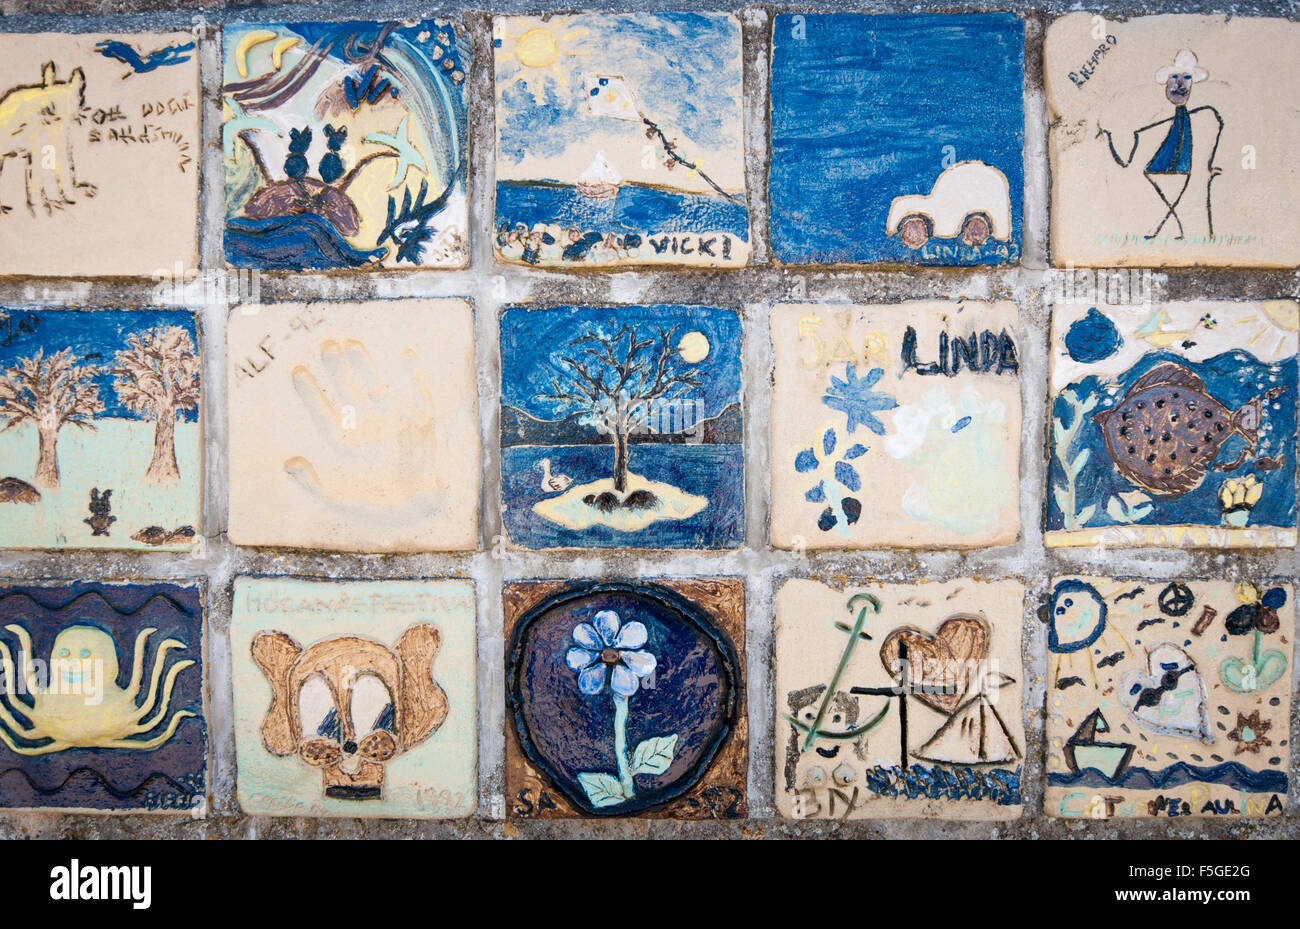 Childrens painted ceramic tile art on the seawall in hgans childrens painted ceramic tile art on the seawall in hgans sweden dailygadgetfo Gallery